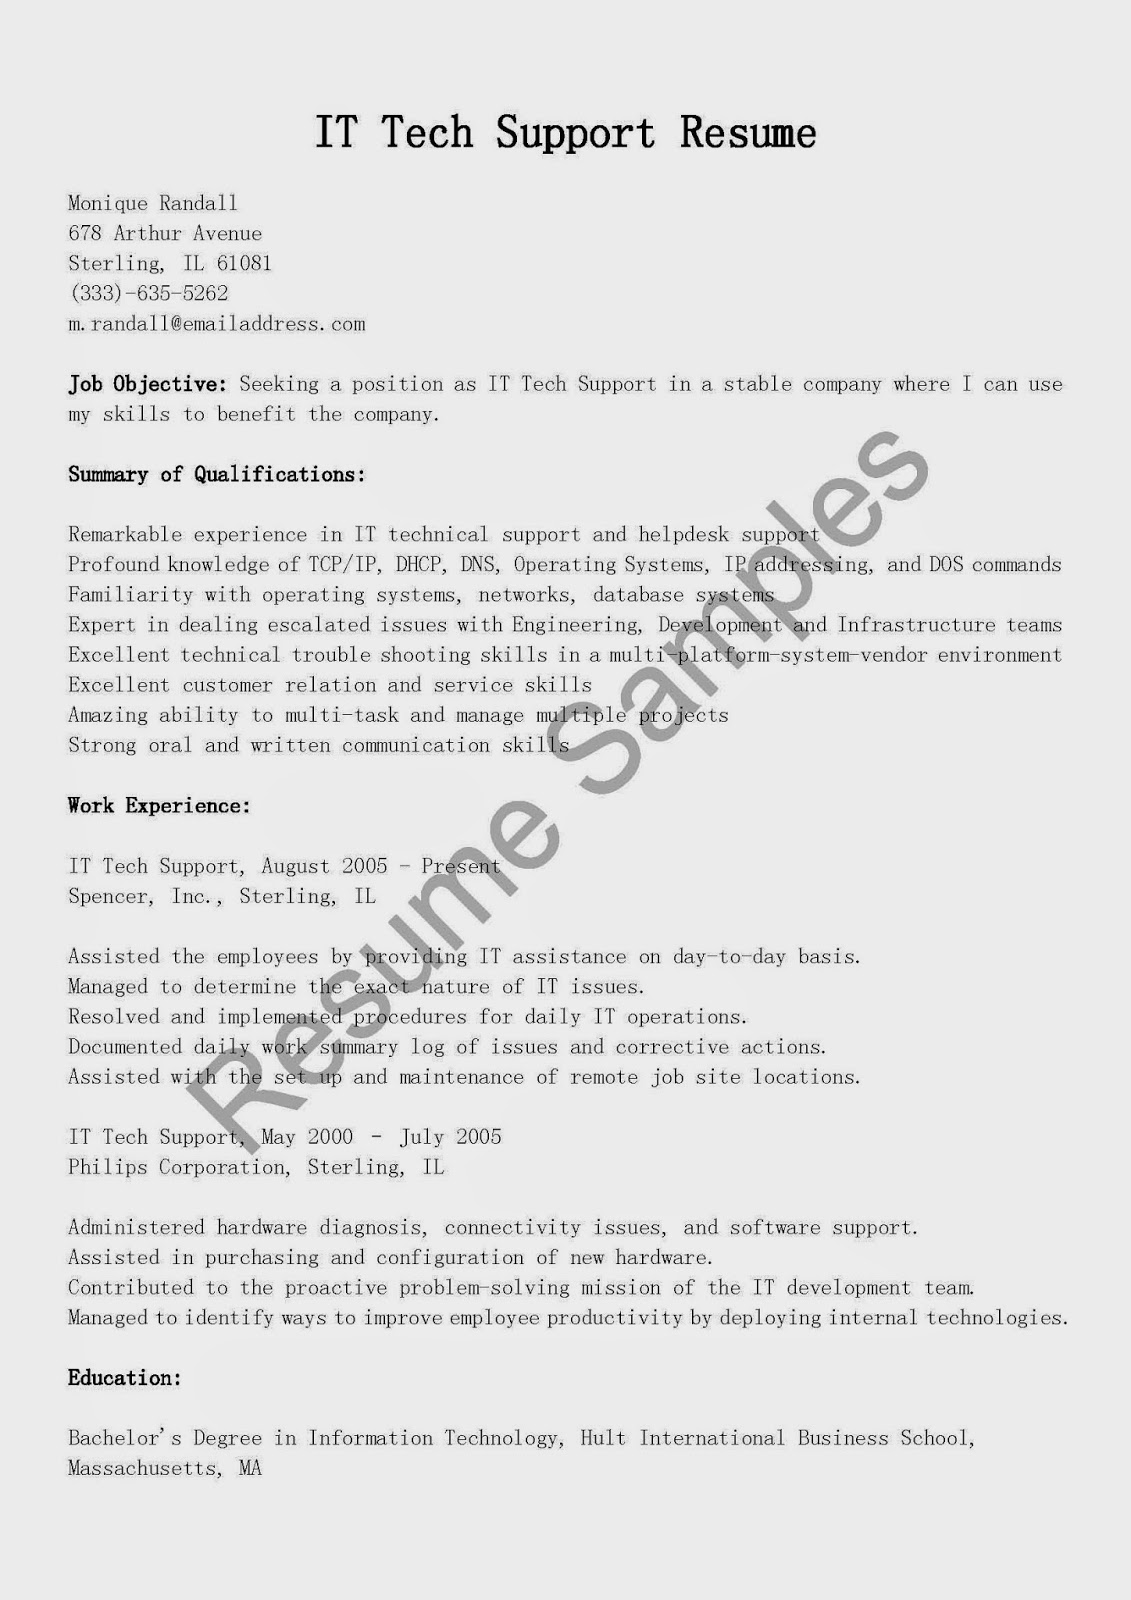 resume samples it tech support resume sample